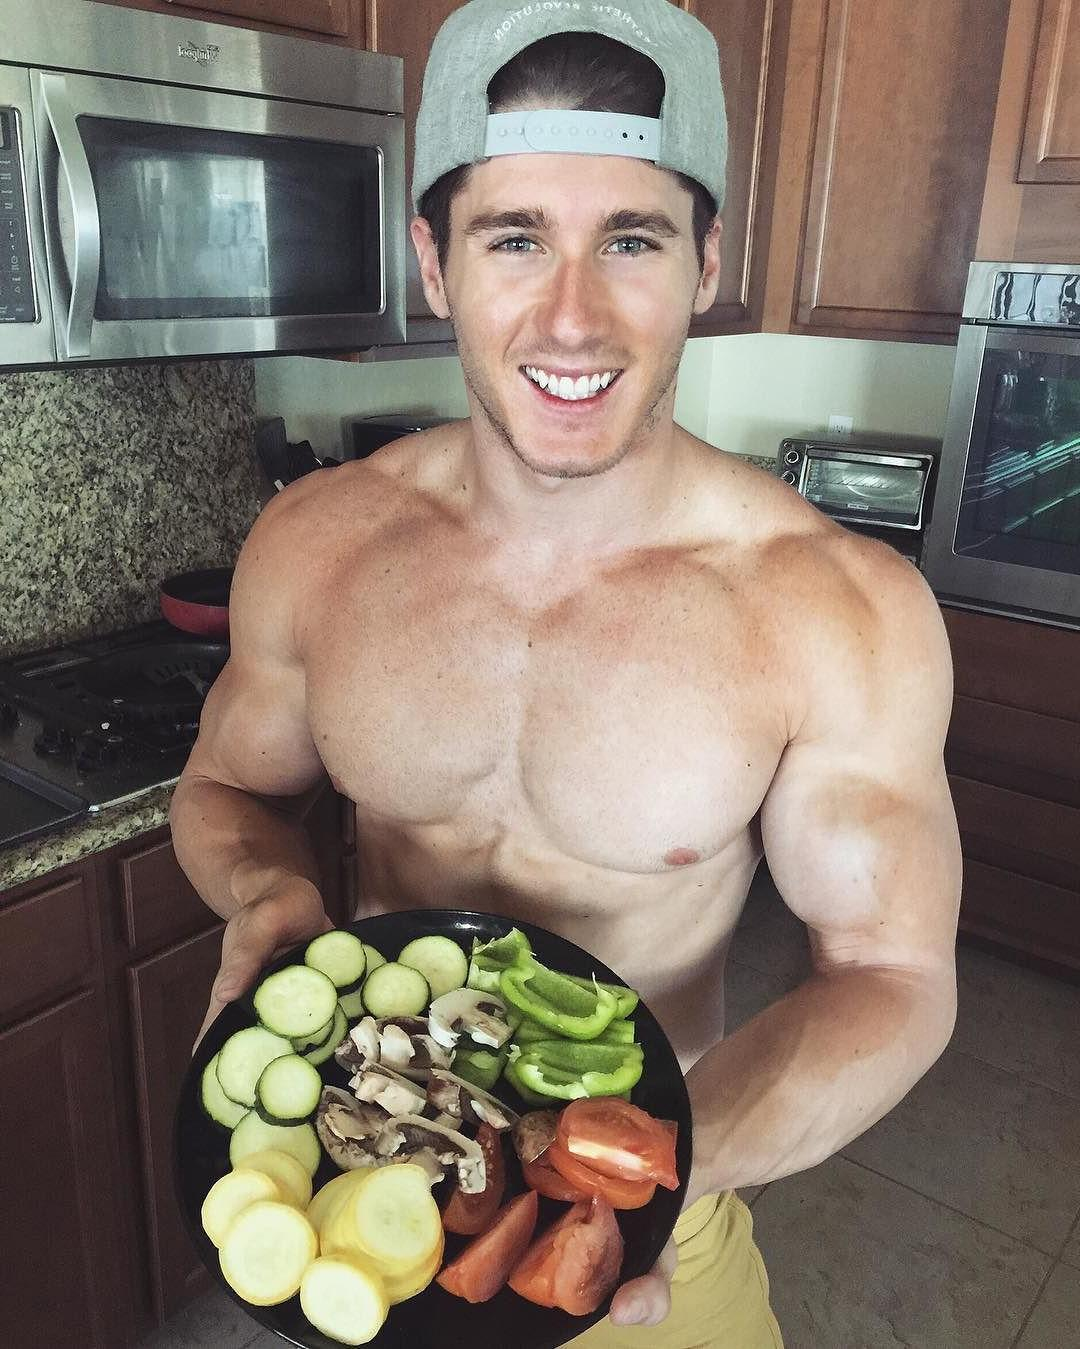 fit-shirtless-dude-baseball-cap-beautiful-blue-eyes-smiling-healthy-food-vegetables